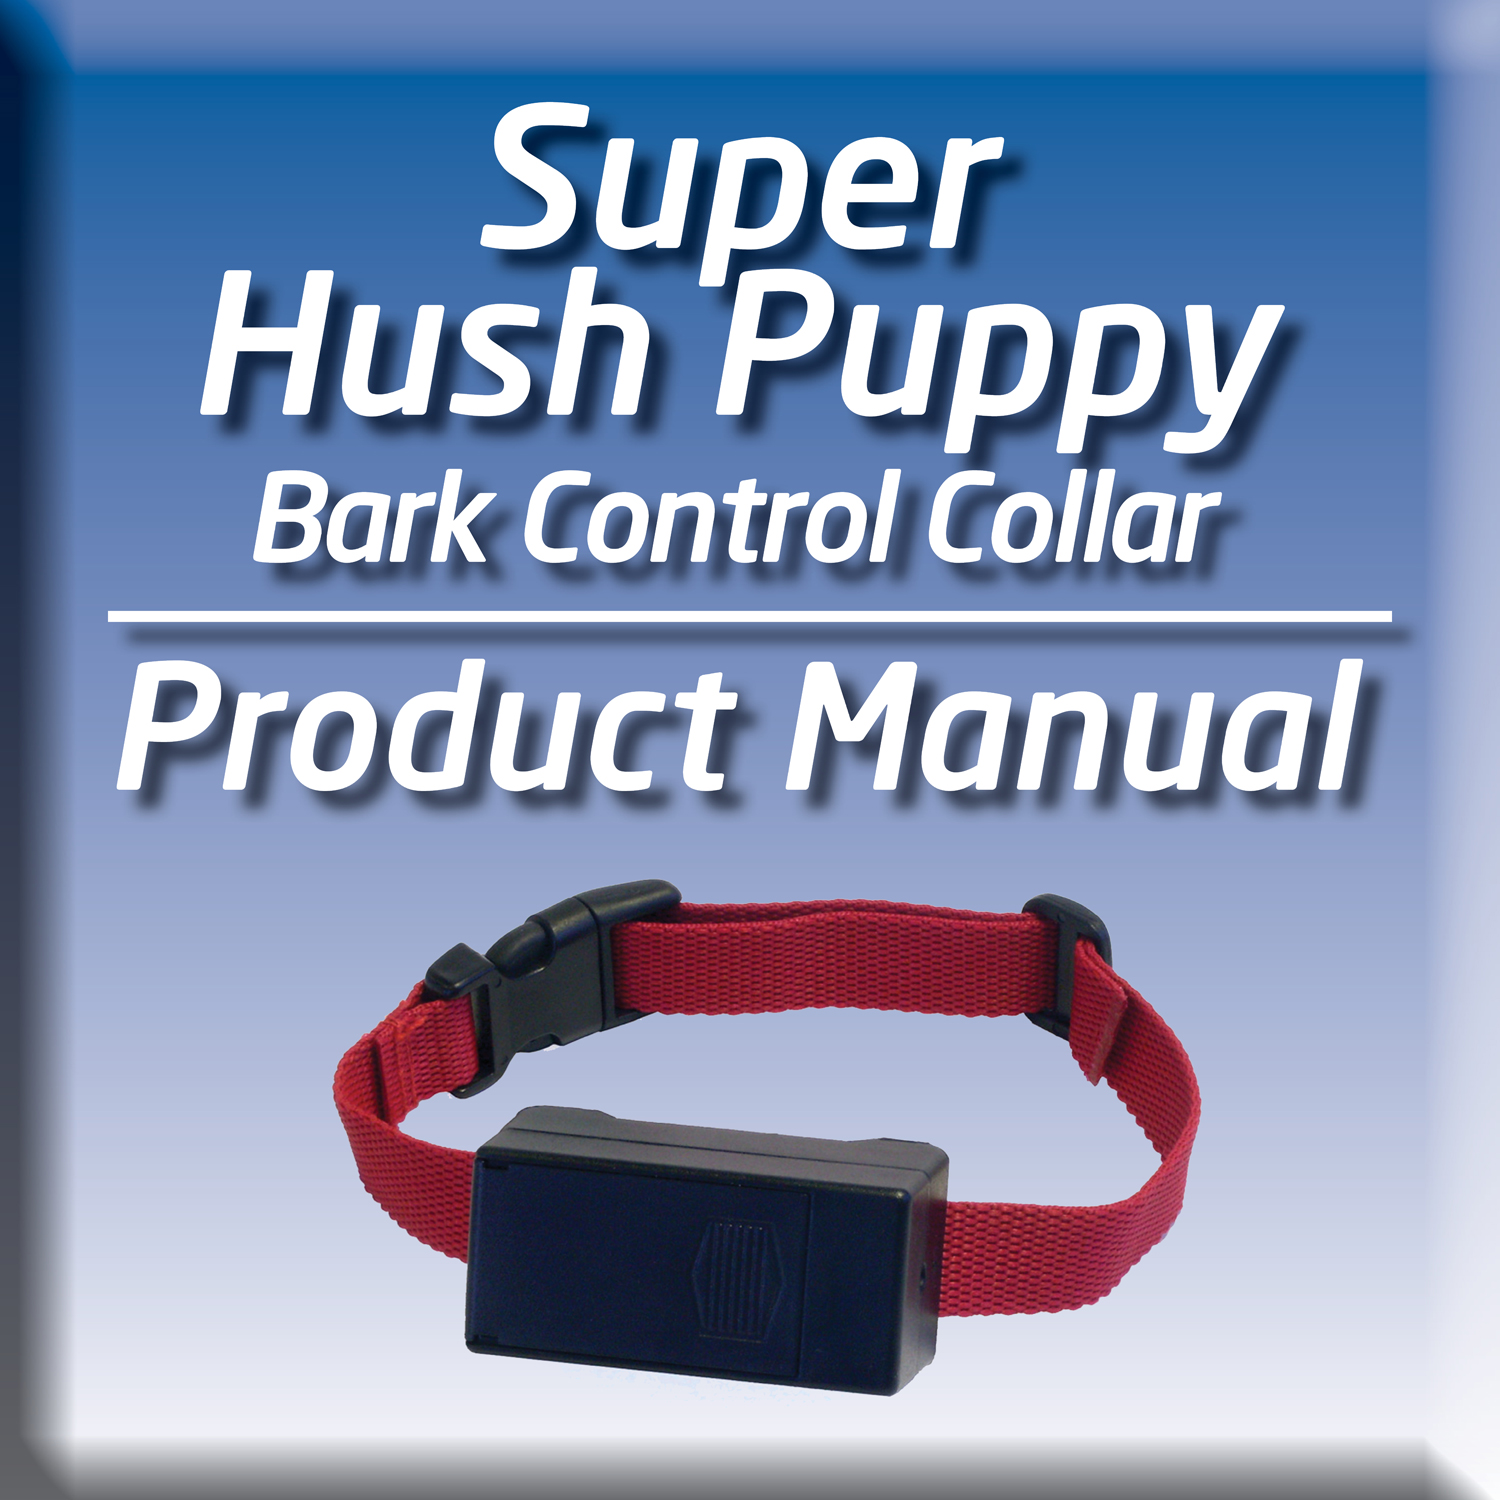 Read our electric fence and doggy door manuals for all of your needs